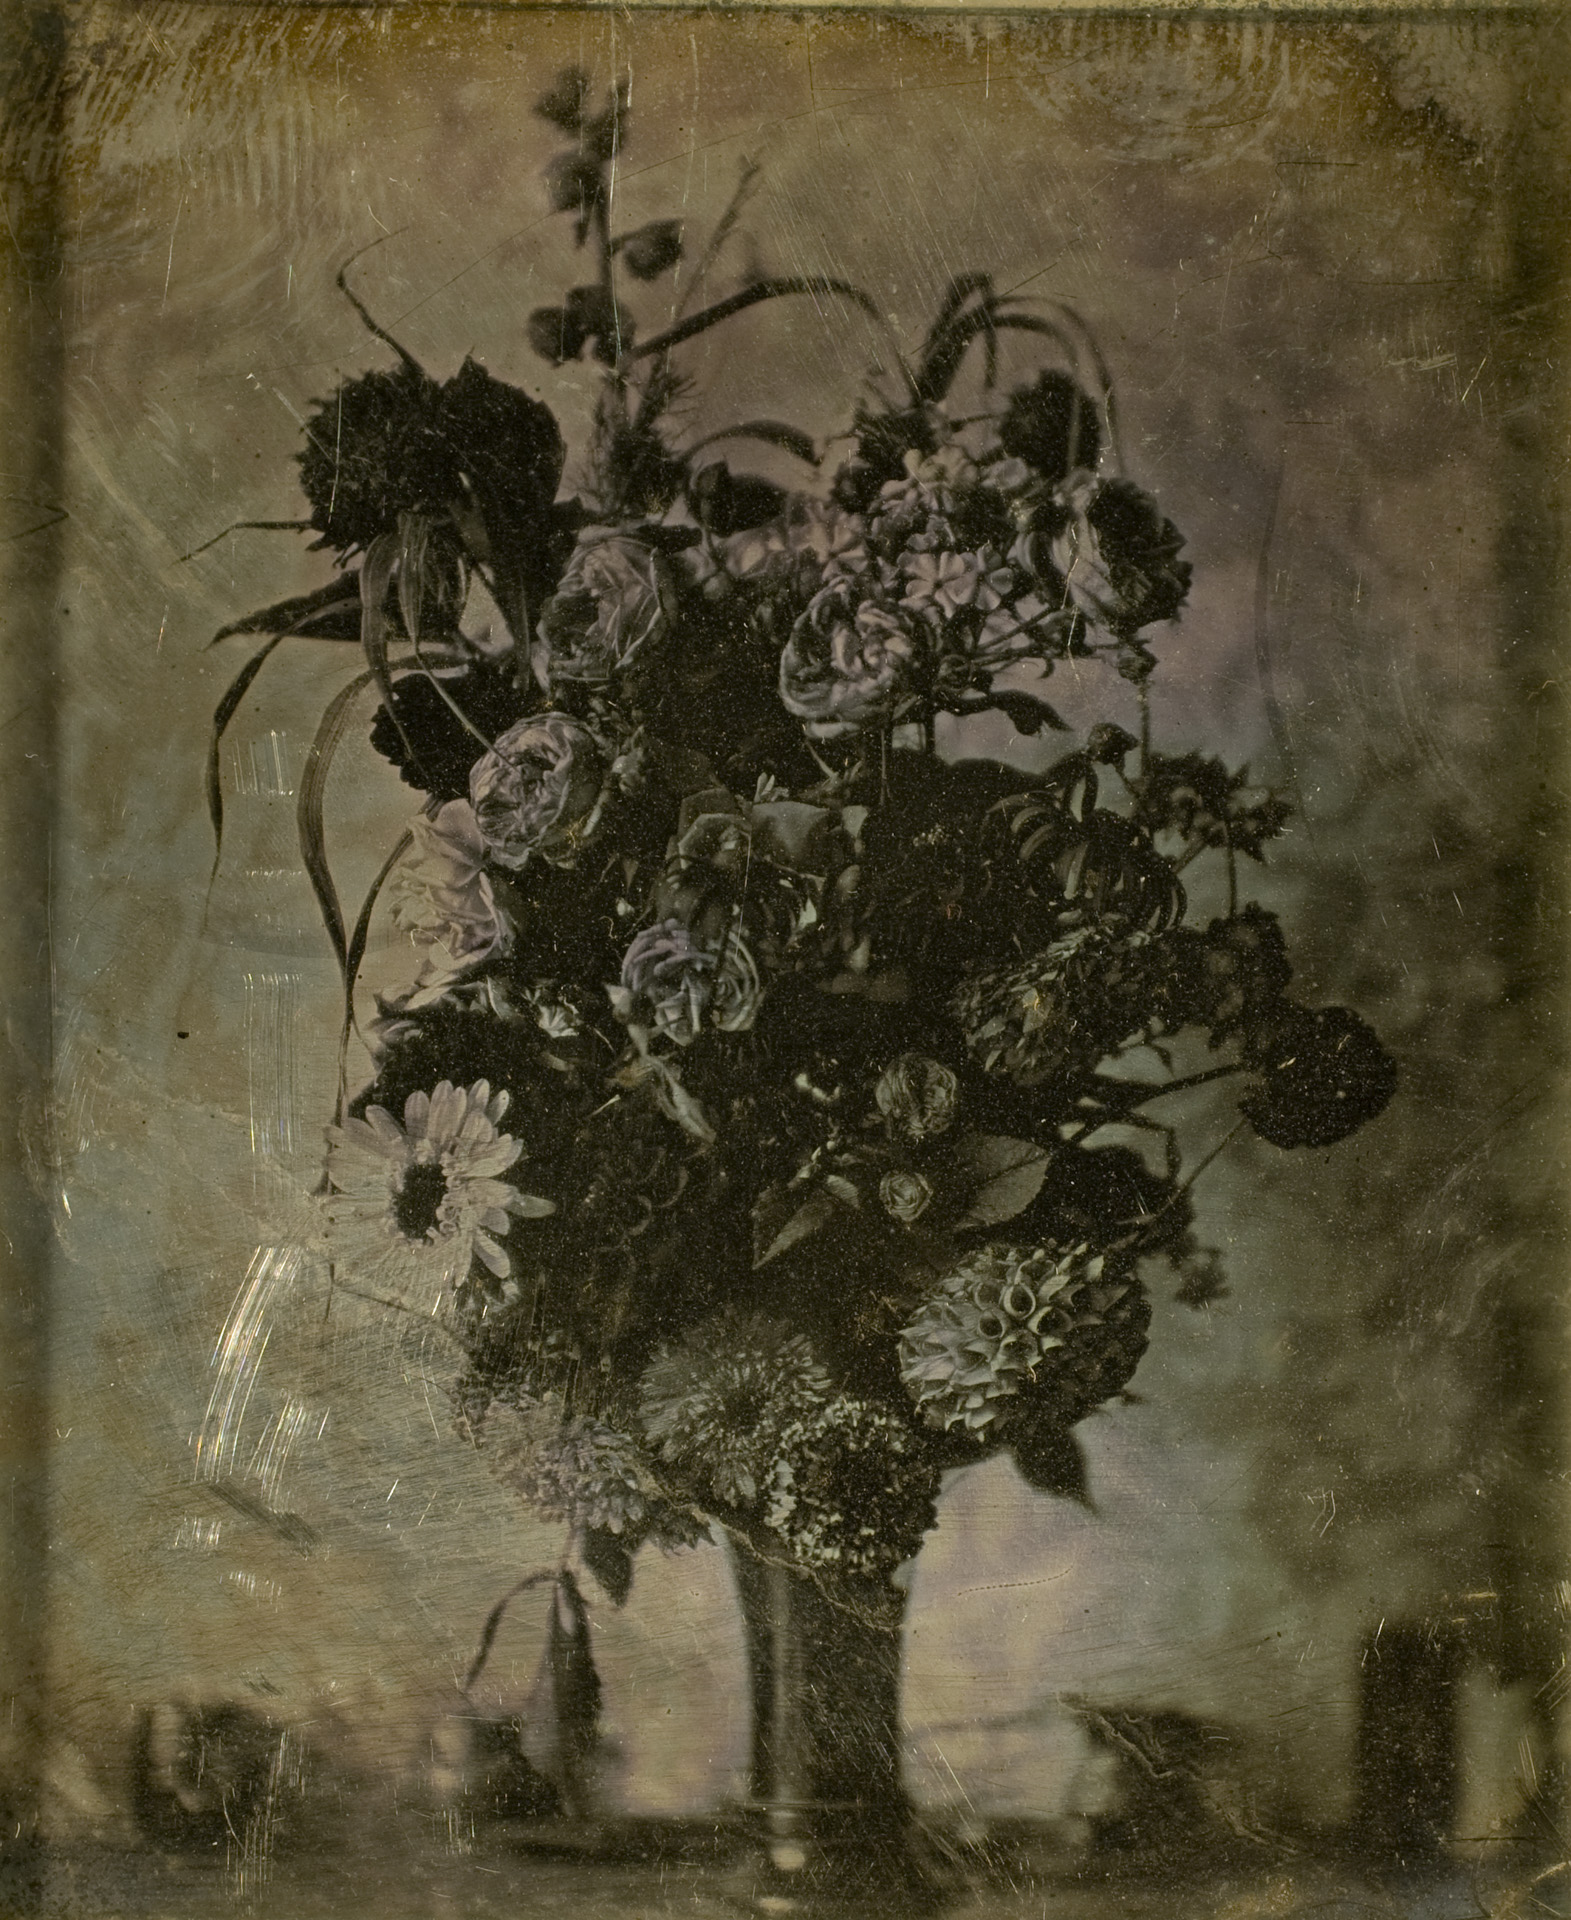 Cromer's Amateur (French), CA 1845, daguerreotype image of a bouquet of flowers measuring 2 7/8 by 2 3/8 inch, owned by George Eastman Museum, a gift of Eastman Kodak Company